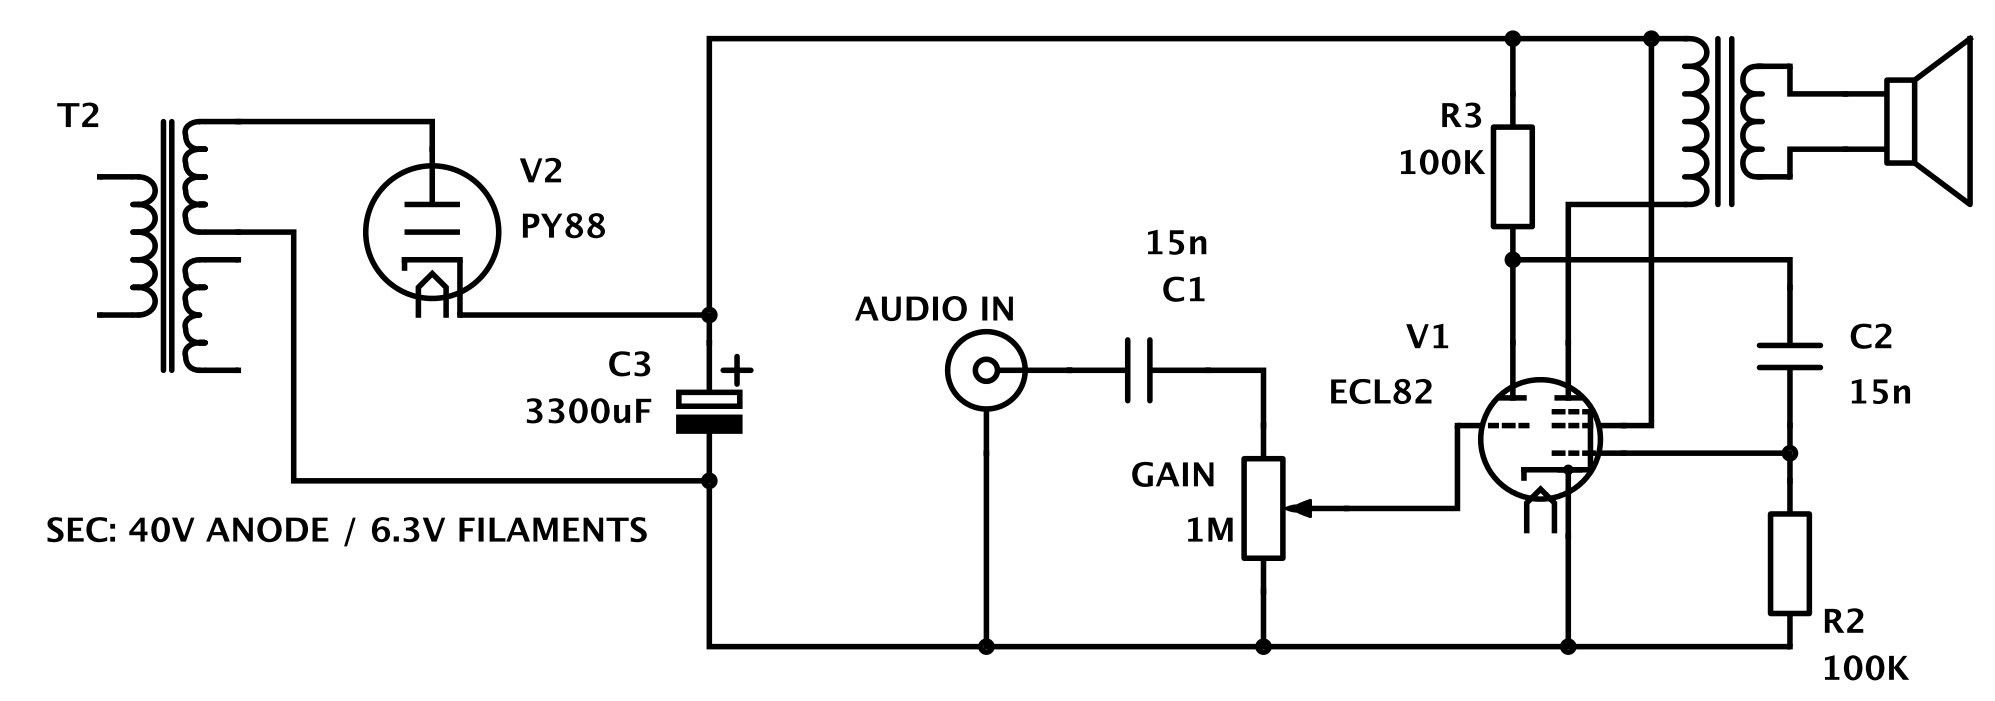 A nice little amplifier that is low voltage (non-deadly